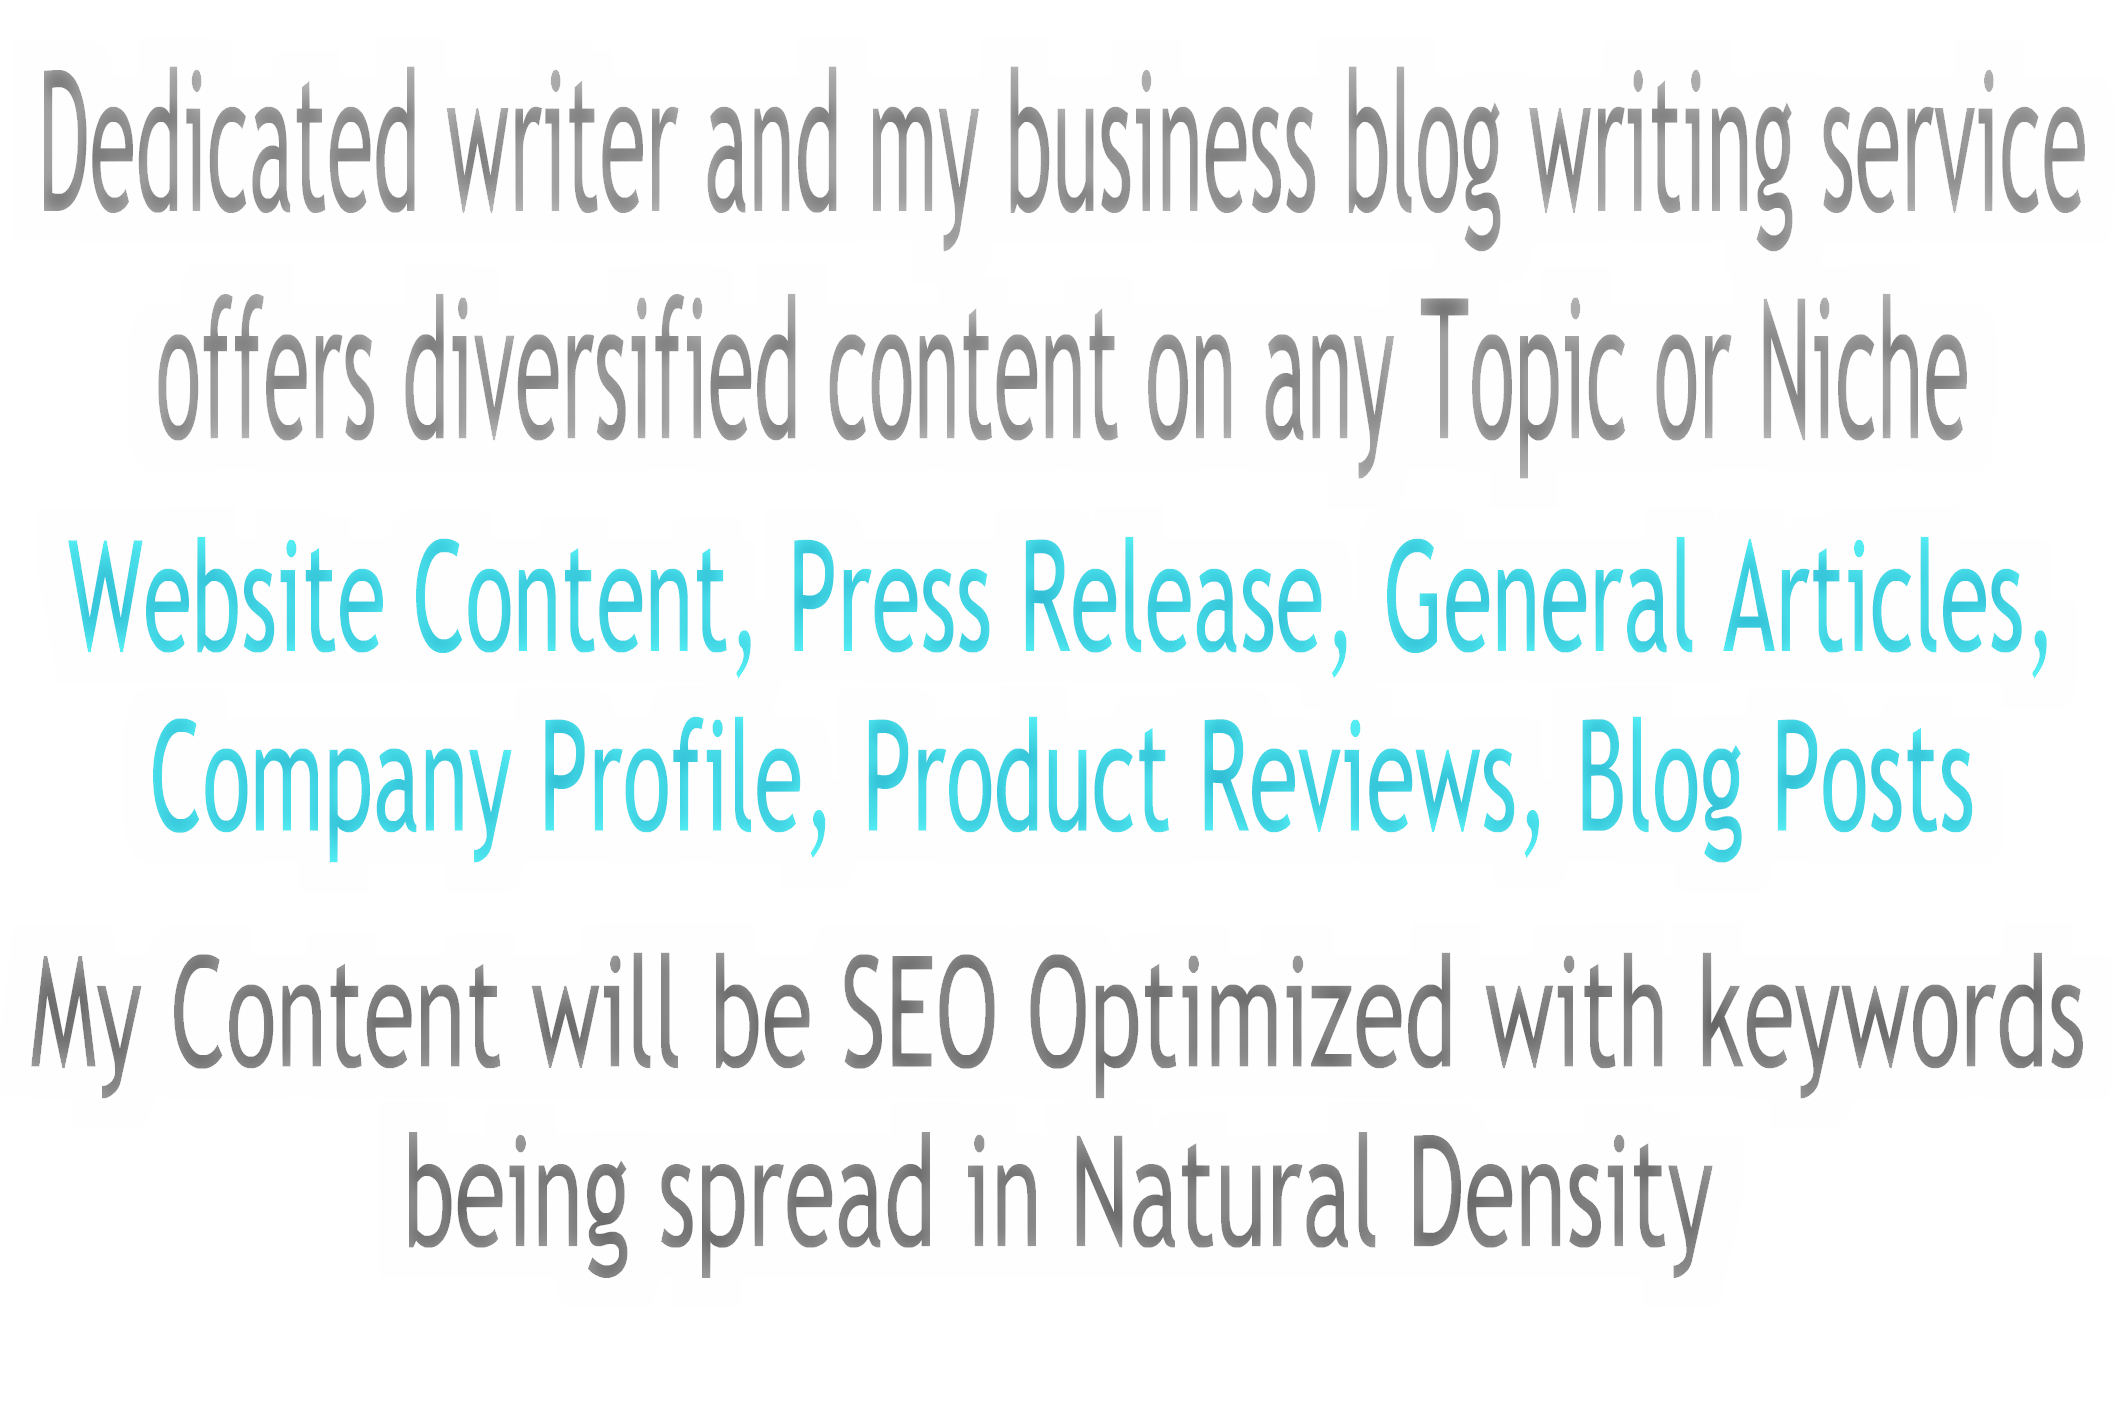 blog writing services We are a blog writing service, article writing service, product description writing service, and copywriting service - all rolled into one our track record for quality, timely service, and subject matter expertise has made textworkers one of the highest rated content writing services in the world.